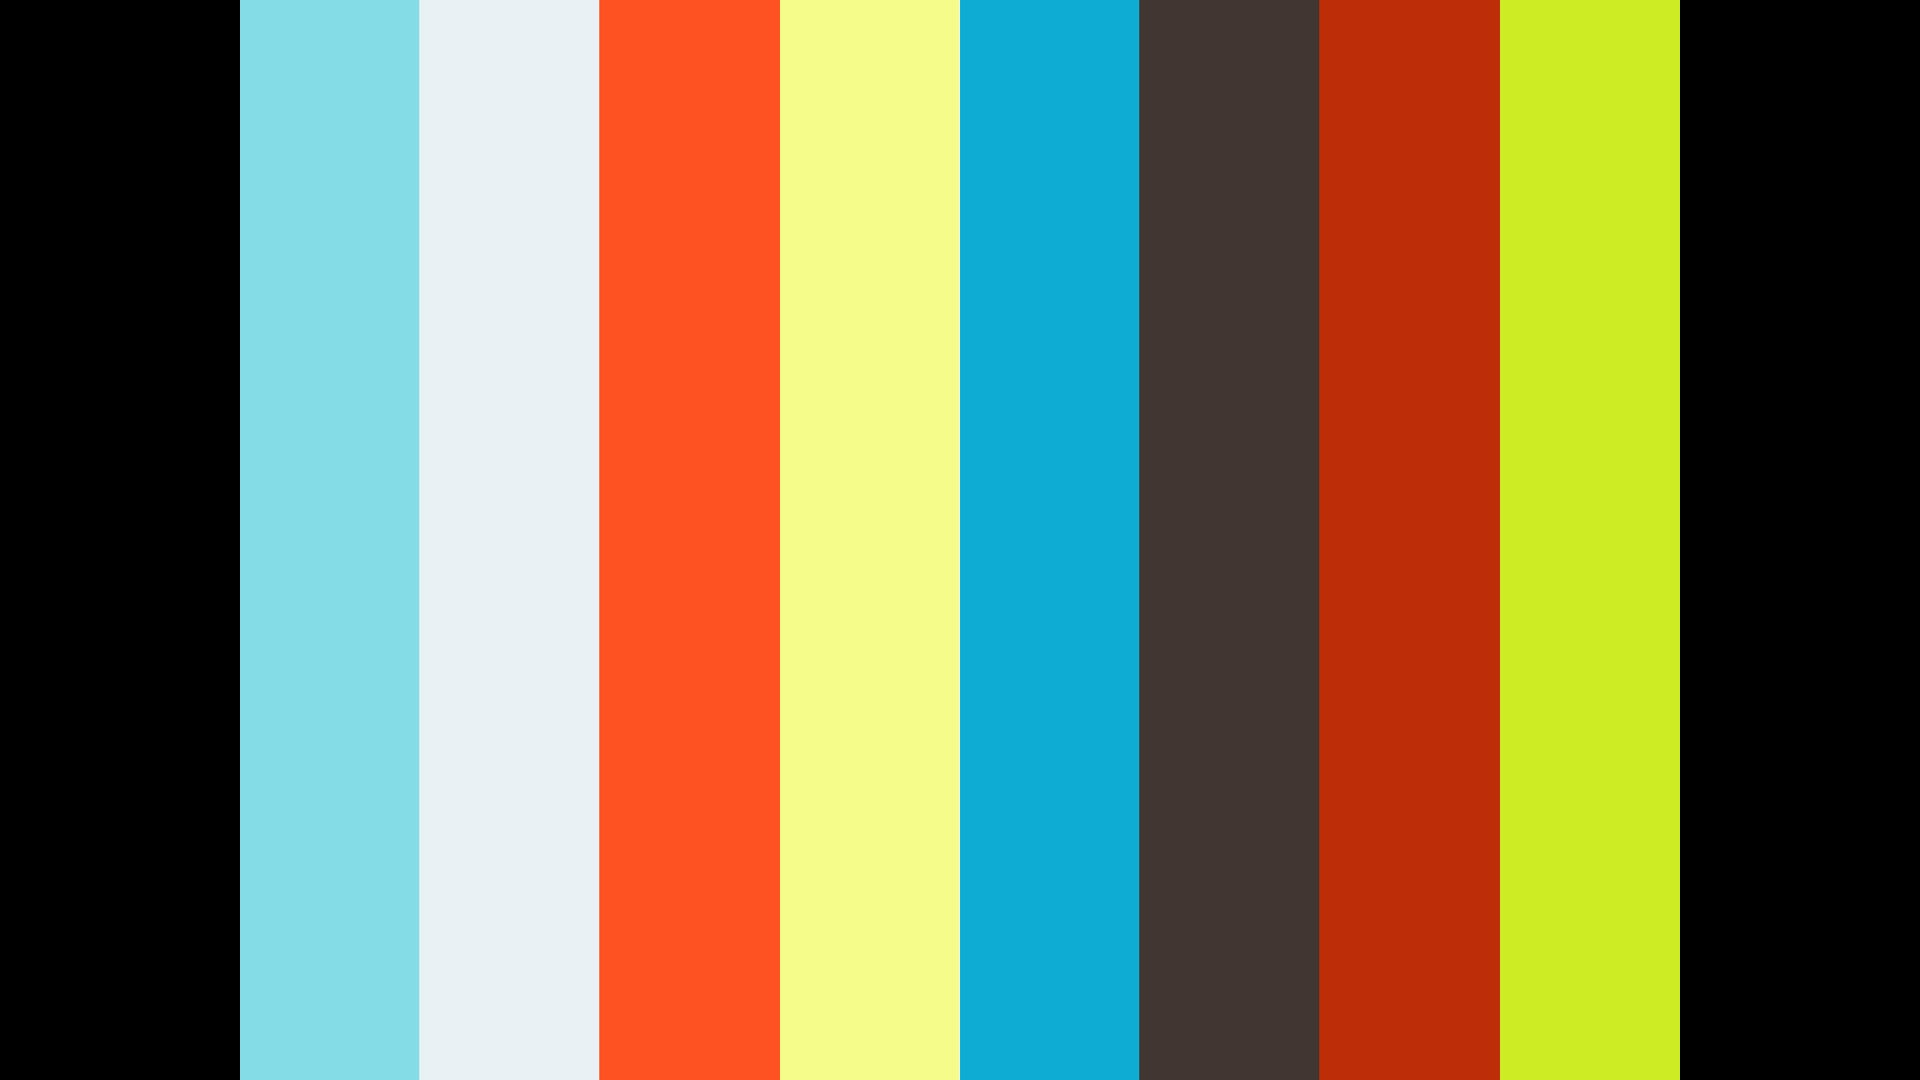 Vídeos eCommerce Platform: ¿Qué son y para qué sirven? | Videocontent Tu vídeo desde 350€ | 578621226 1920x1080 | videos-de-producto, videos-de-empresas, videos-corporativos-videos, video, video-seo, blogs, actualidad